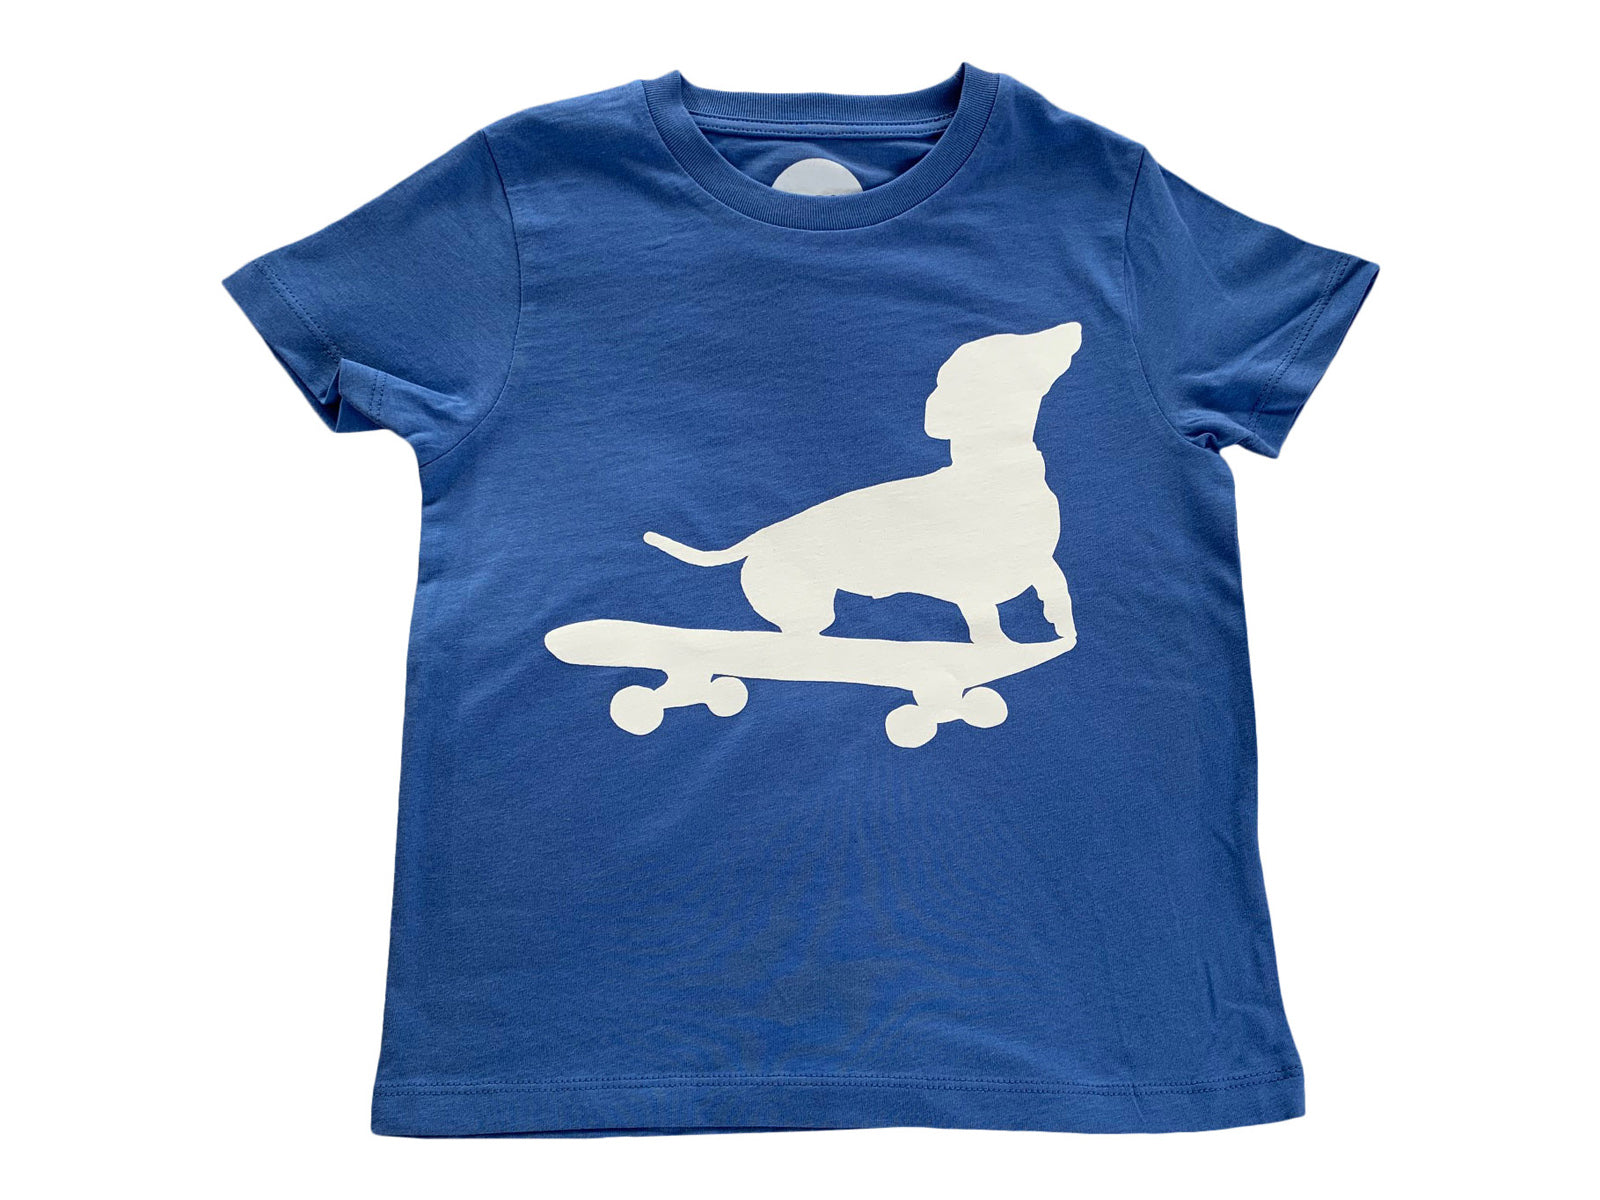 Dachshund on Skateboard T-shirt in Organic Blue Cotton NEW COLOUR